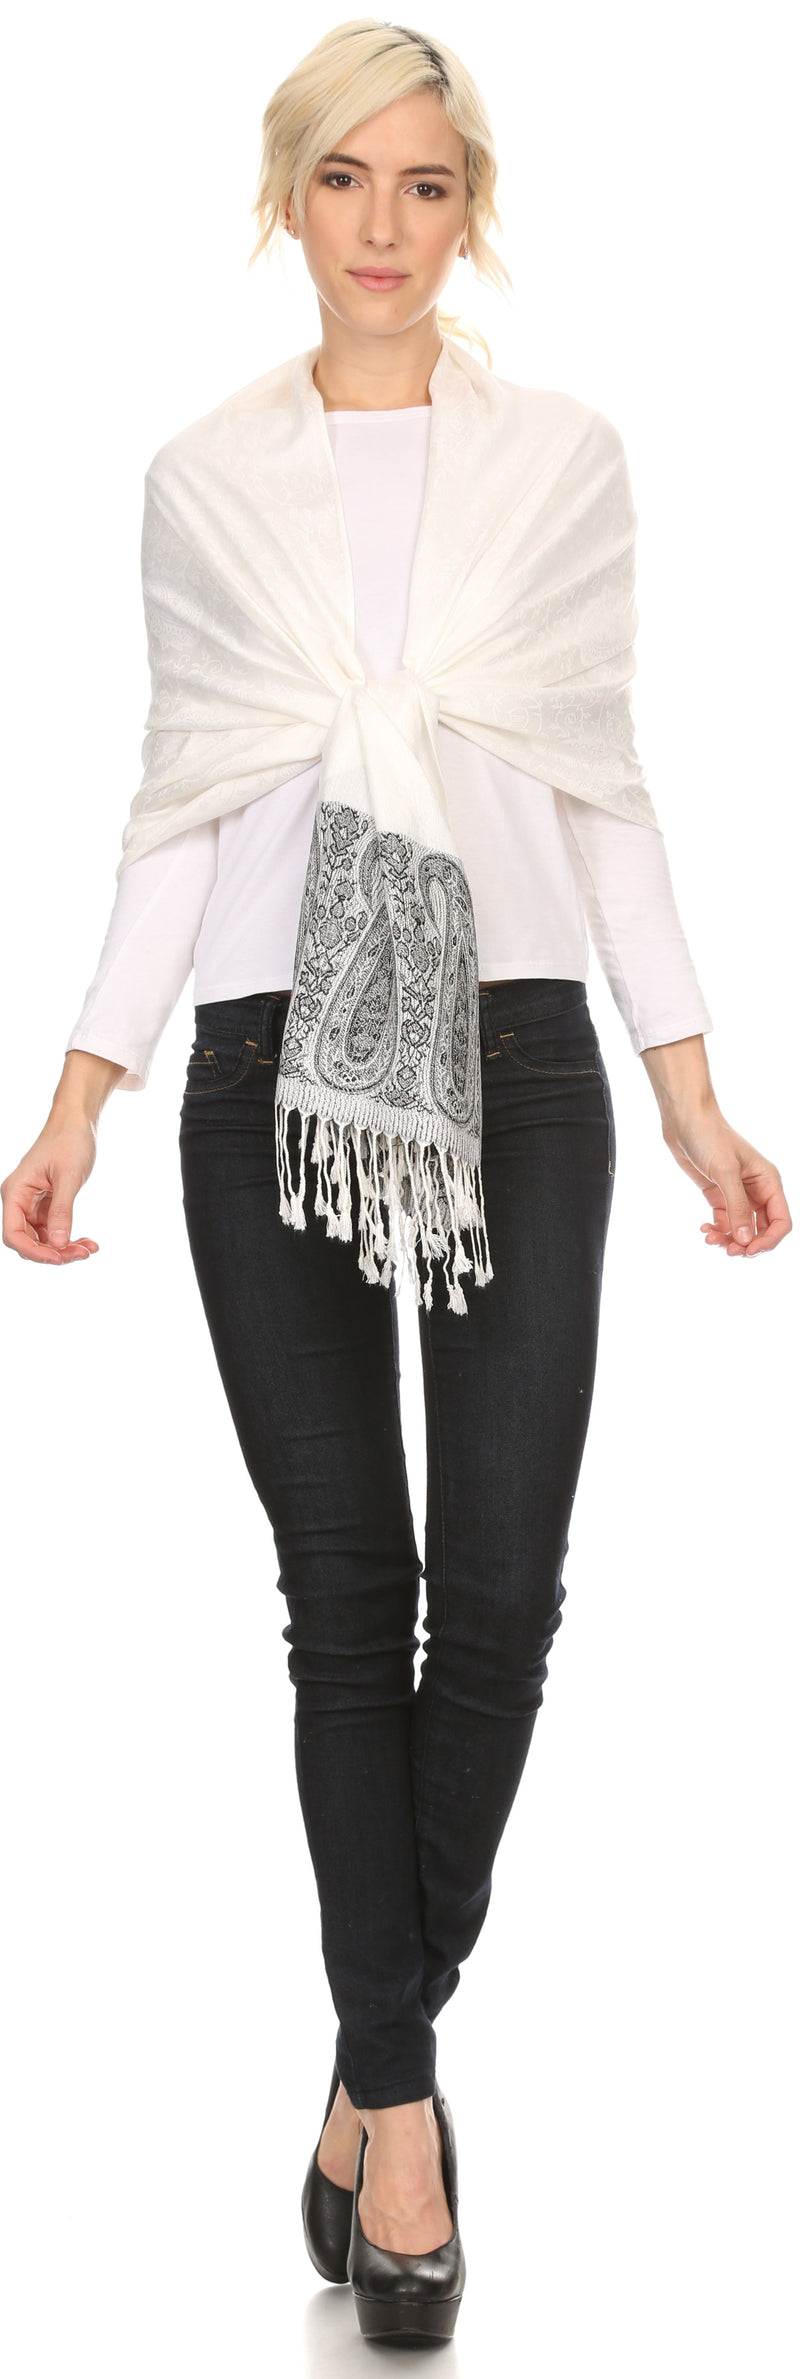 Sakkas Bela Long Wide Multi Patterned Tassel Fringe Pashmina Shawl / Wrap / Stole